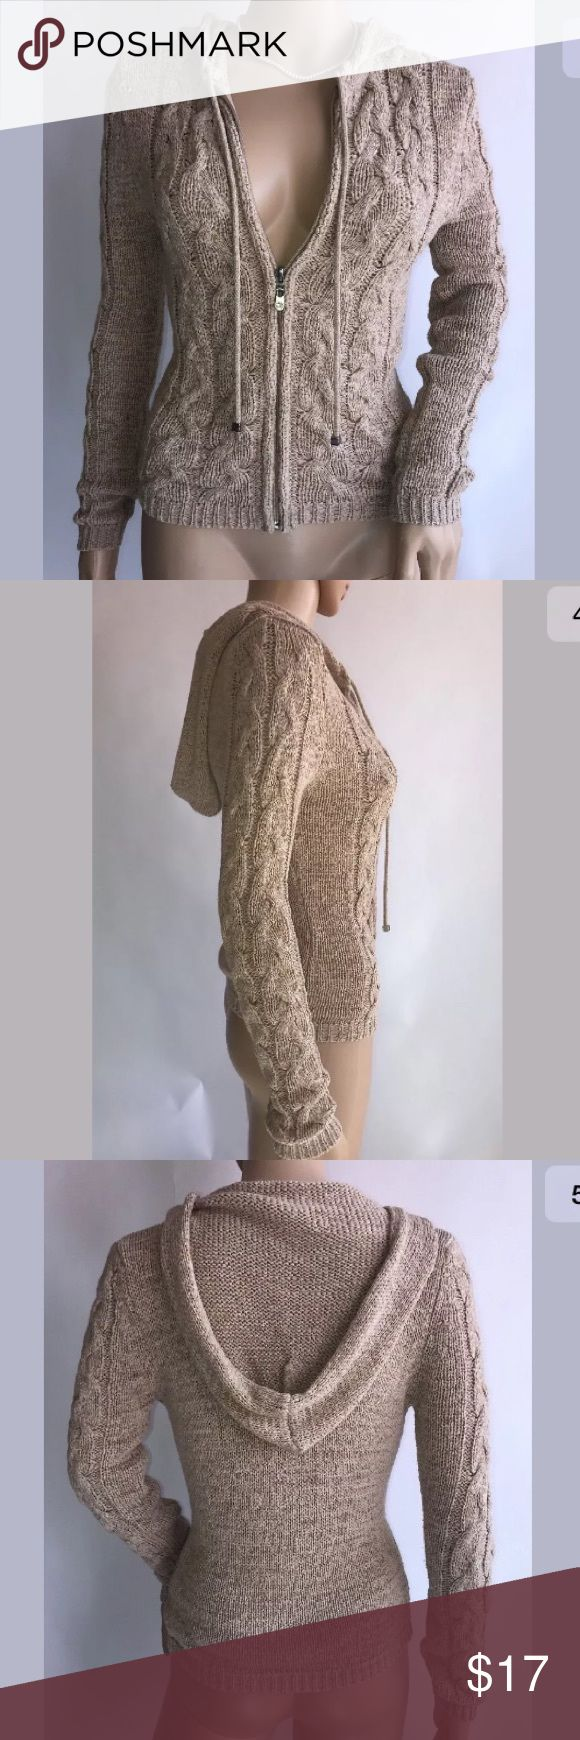 """BCBGMAXAZRIA Khaki Nude Knit Zip Up Hoodie S BCBGMAXAZRIA Khaki Nude Knit Zip Up Hoodie in size S. ⛔Small snag on left shoulder⛔small pink stain on front⛔See photos⛔ I ship same or next business day depending on time payment is made.  Measurements laying flat are:  Armpit to Armpit: 16""""  Sleeve: 26""""  Length: 21""""  Material: 67% Acrylic 39% Nylon BCBGMaxAzria Sweaters"""